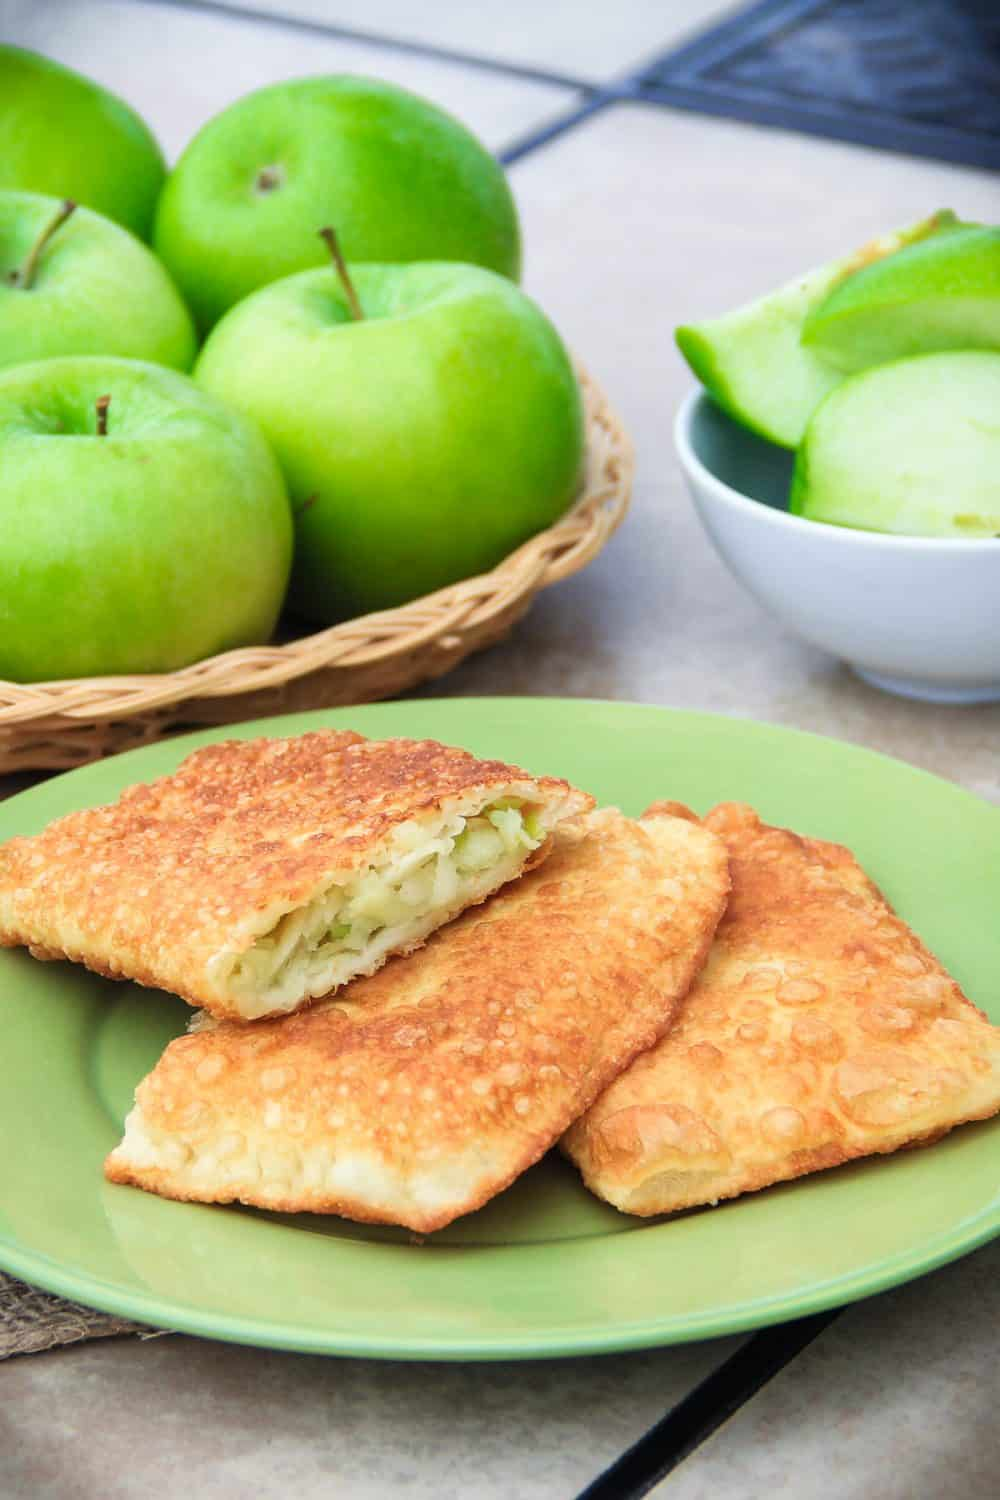 from scratch made apple turnovers on a green plate with sliced granny smith apple wedges in the background